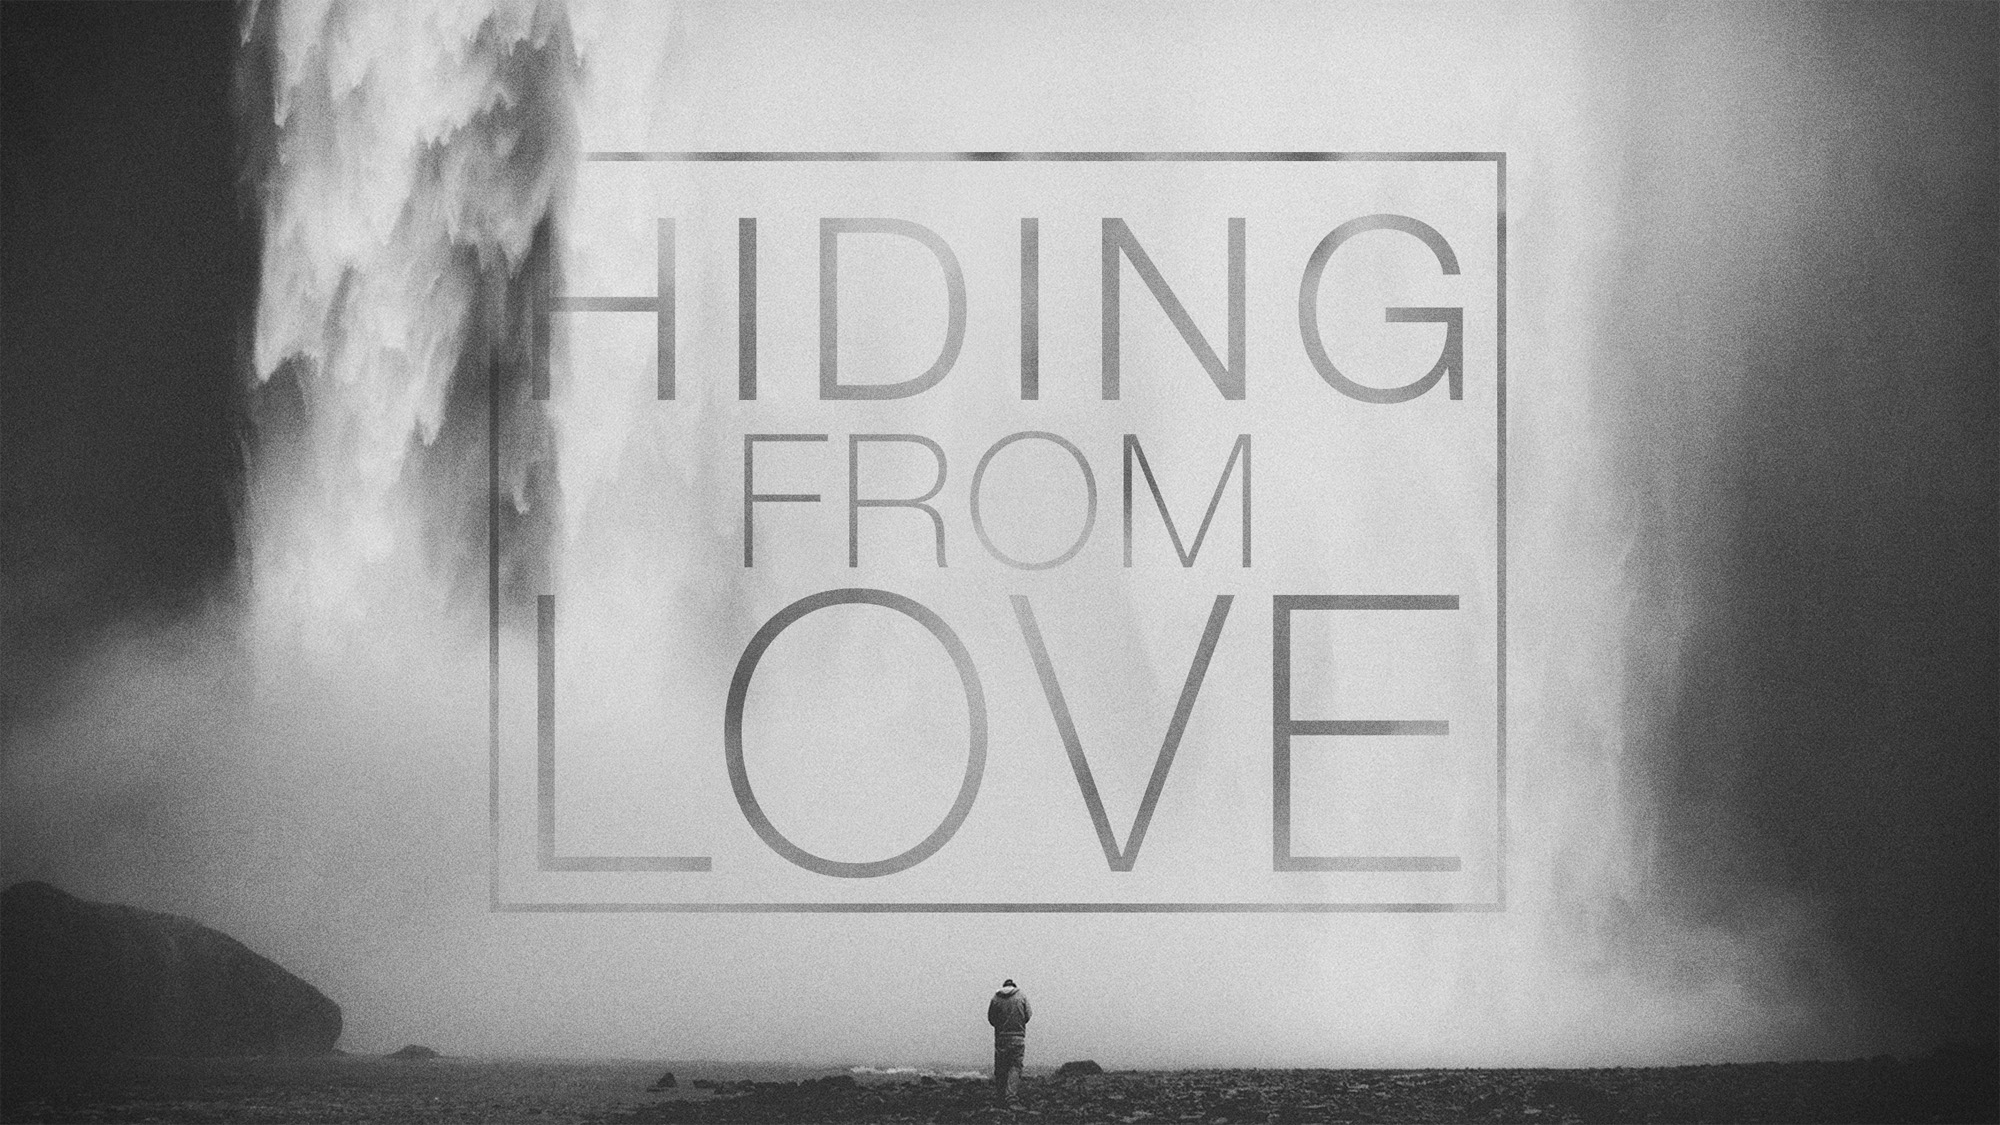 Hiding From Love message series logo